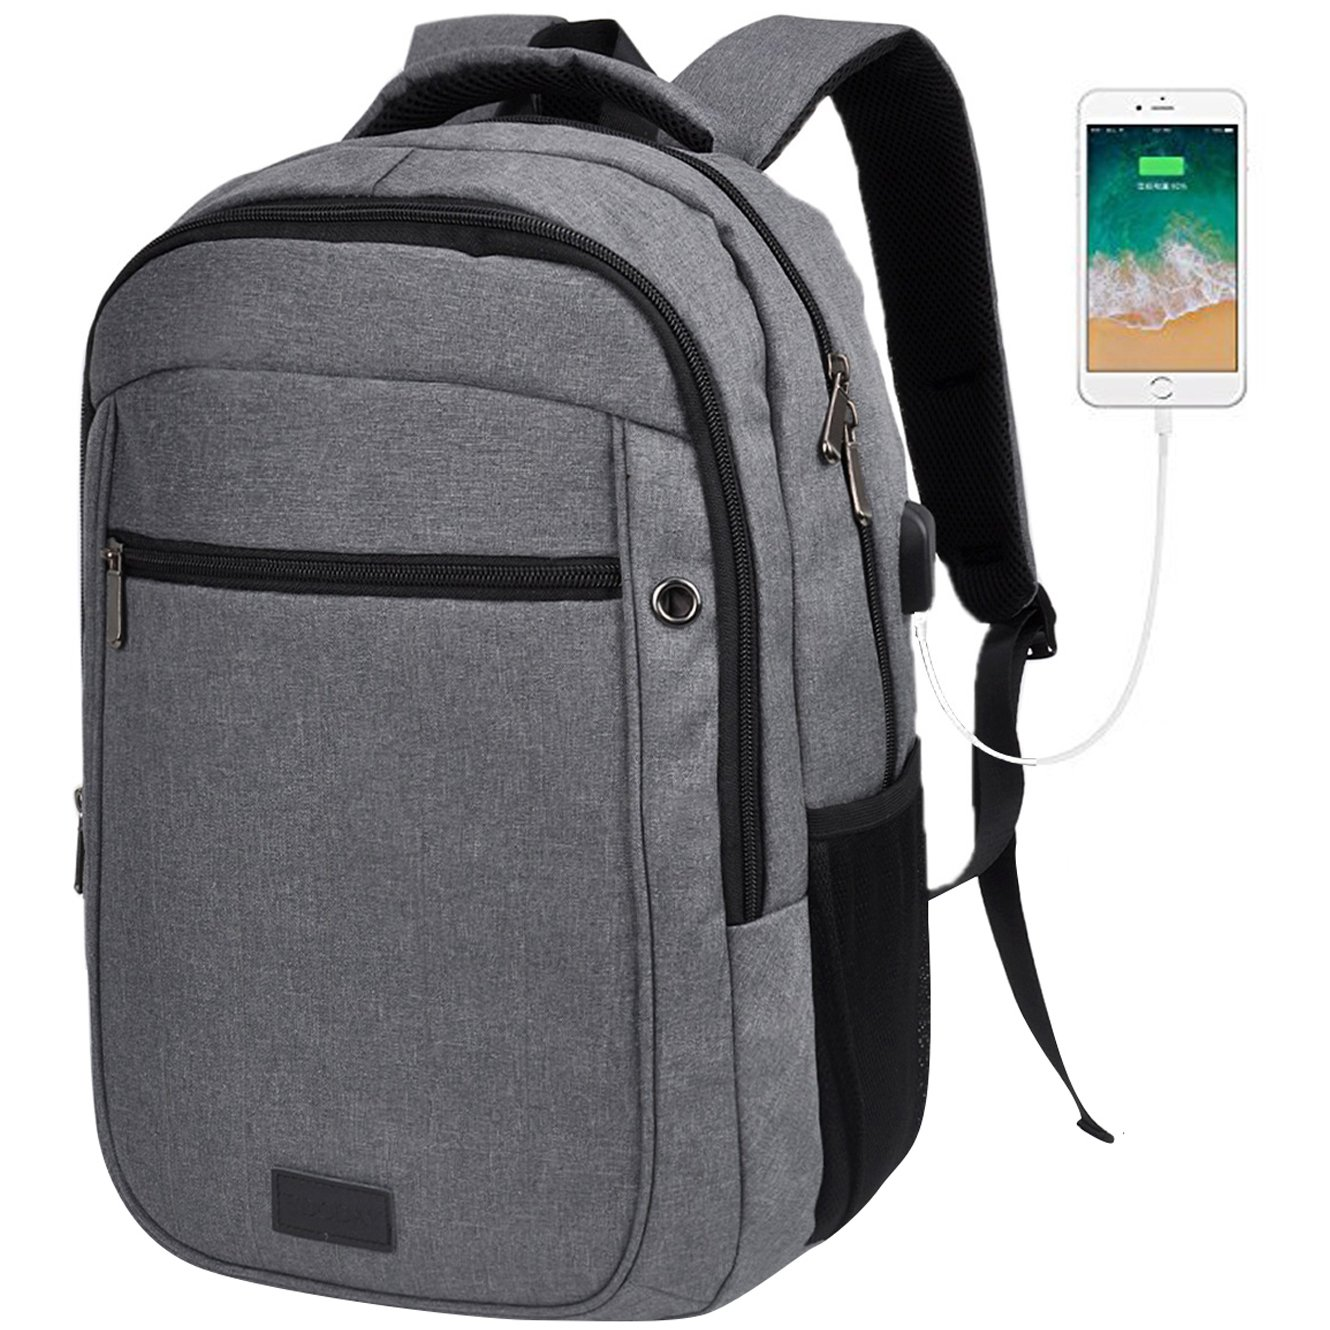 Sunny Snowy School Backpacks,Laptop Backpack up to 15.6 Inch,Travel Backpack with USB Charging Port(8021,Dark Gray)